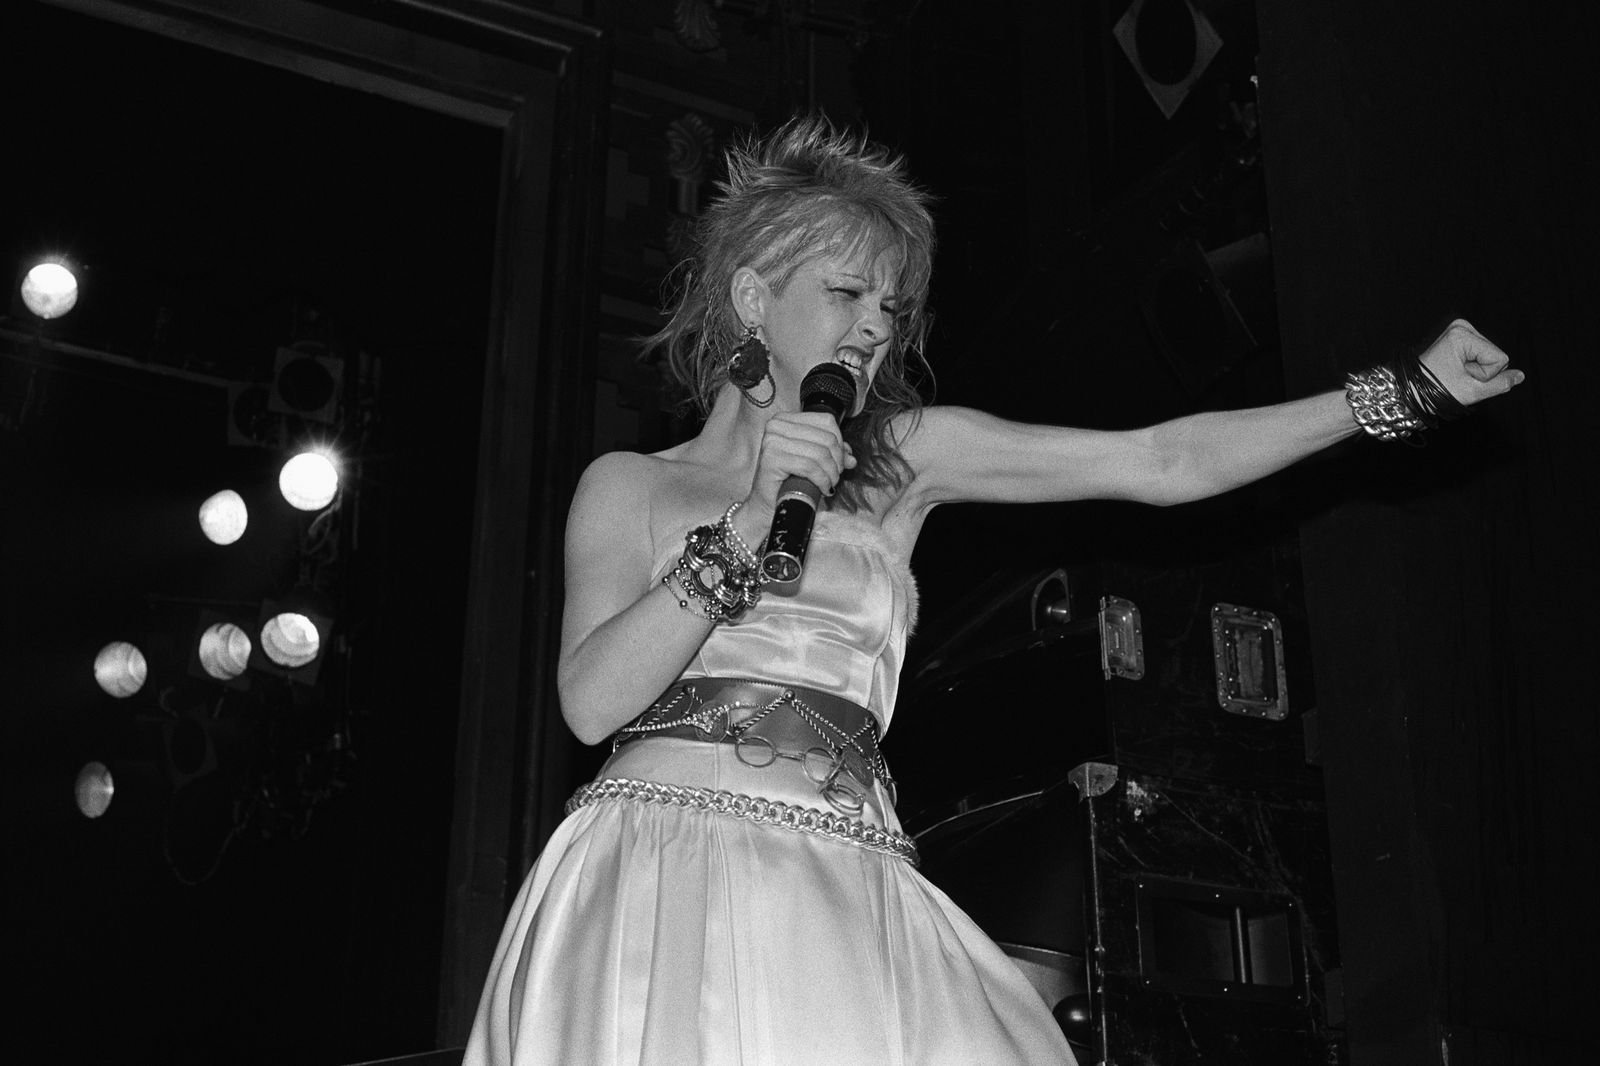 Cyndi Lauper Lyrics, Music, News And Biography